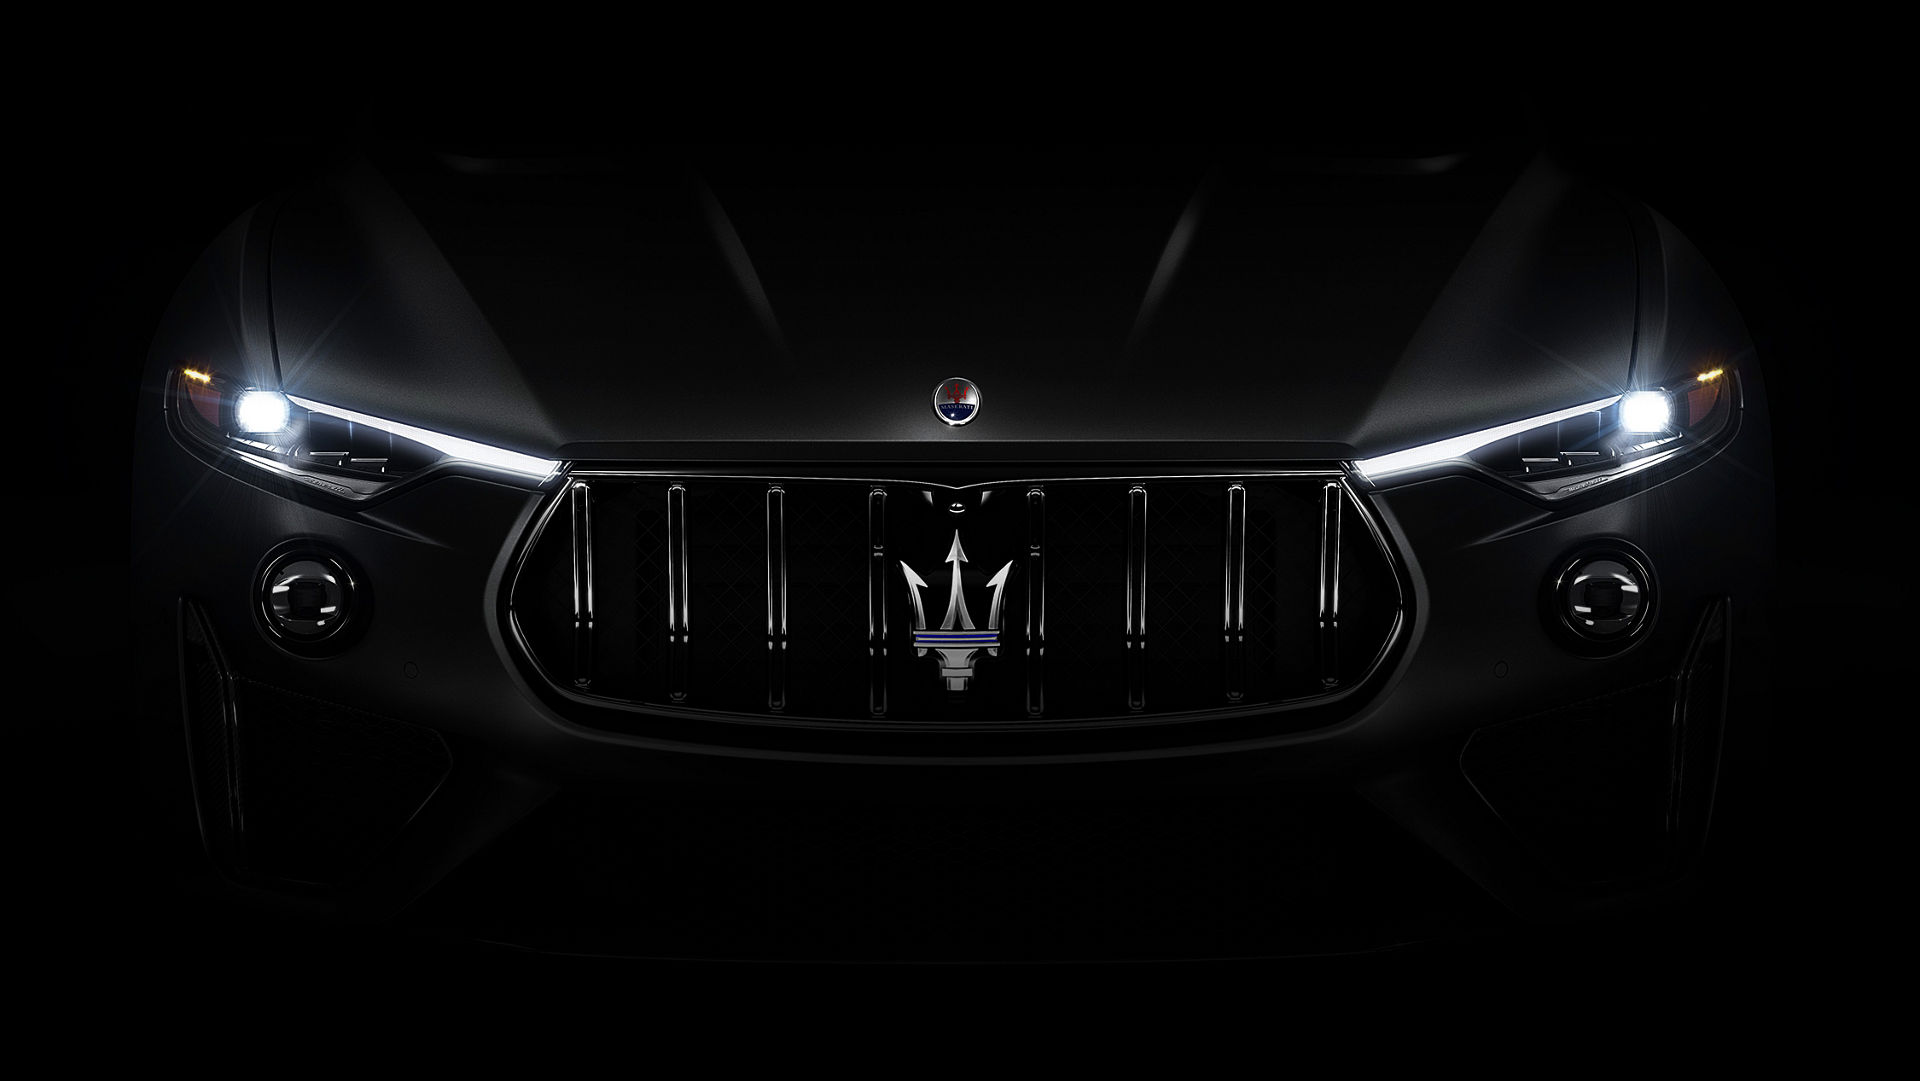 Maserati Levante Trofeo V8 – Menacing front grille hints at the power beneath